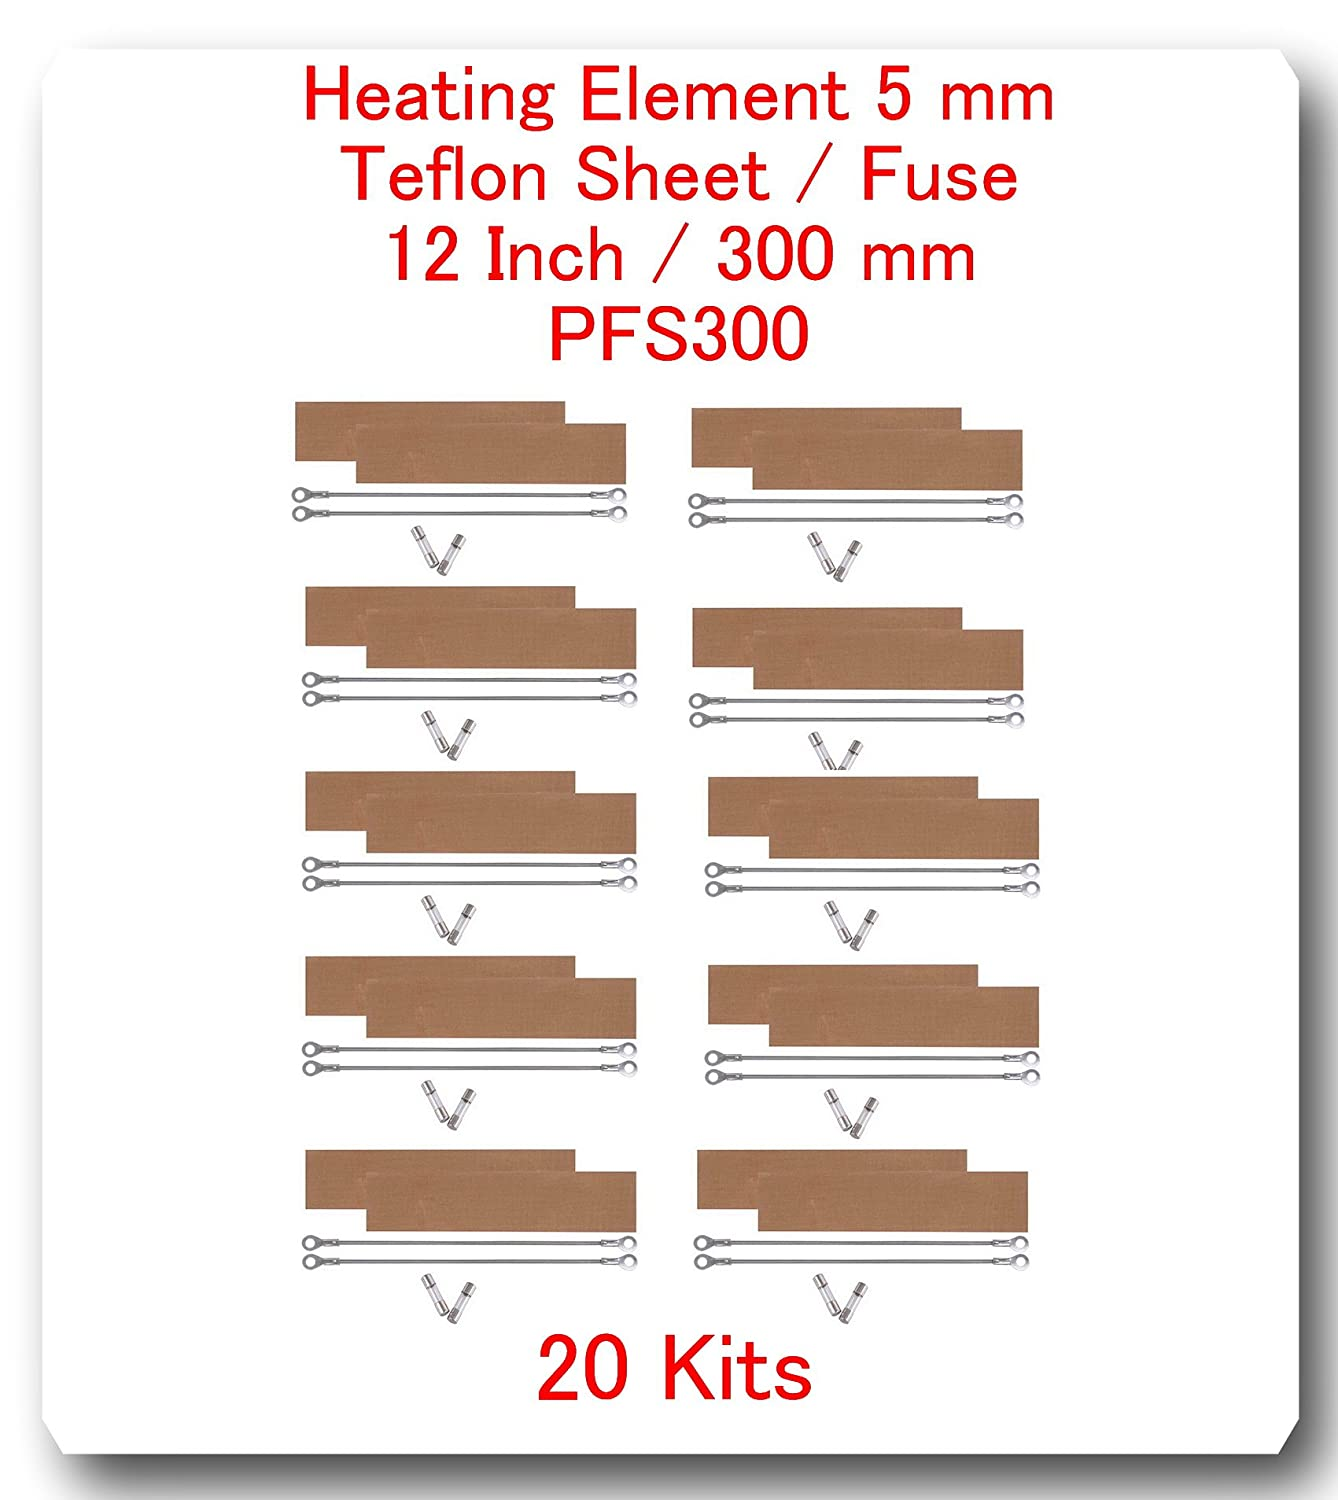 (20 Kits) Replacement Elements for Impulse Sealer PFS-300 12